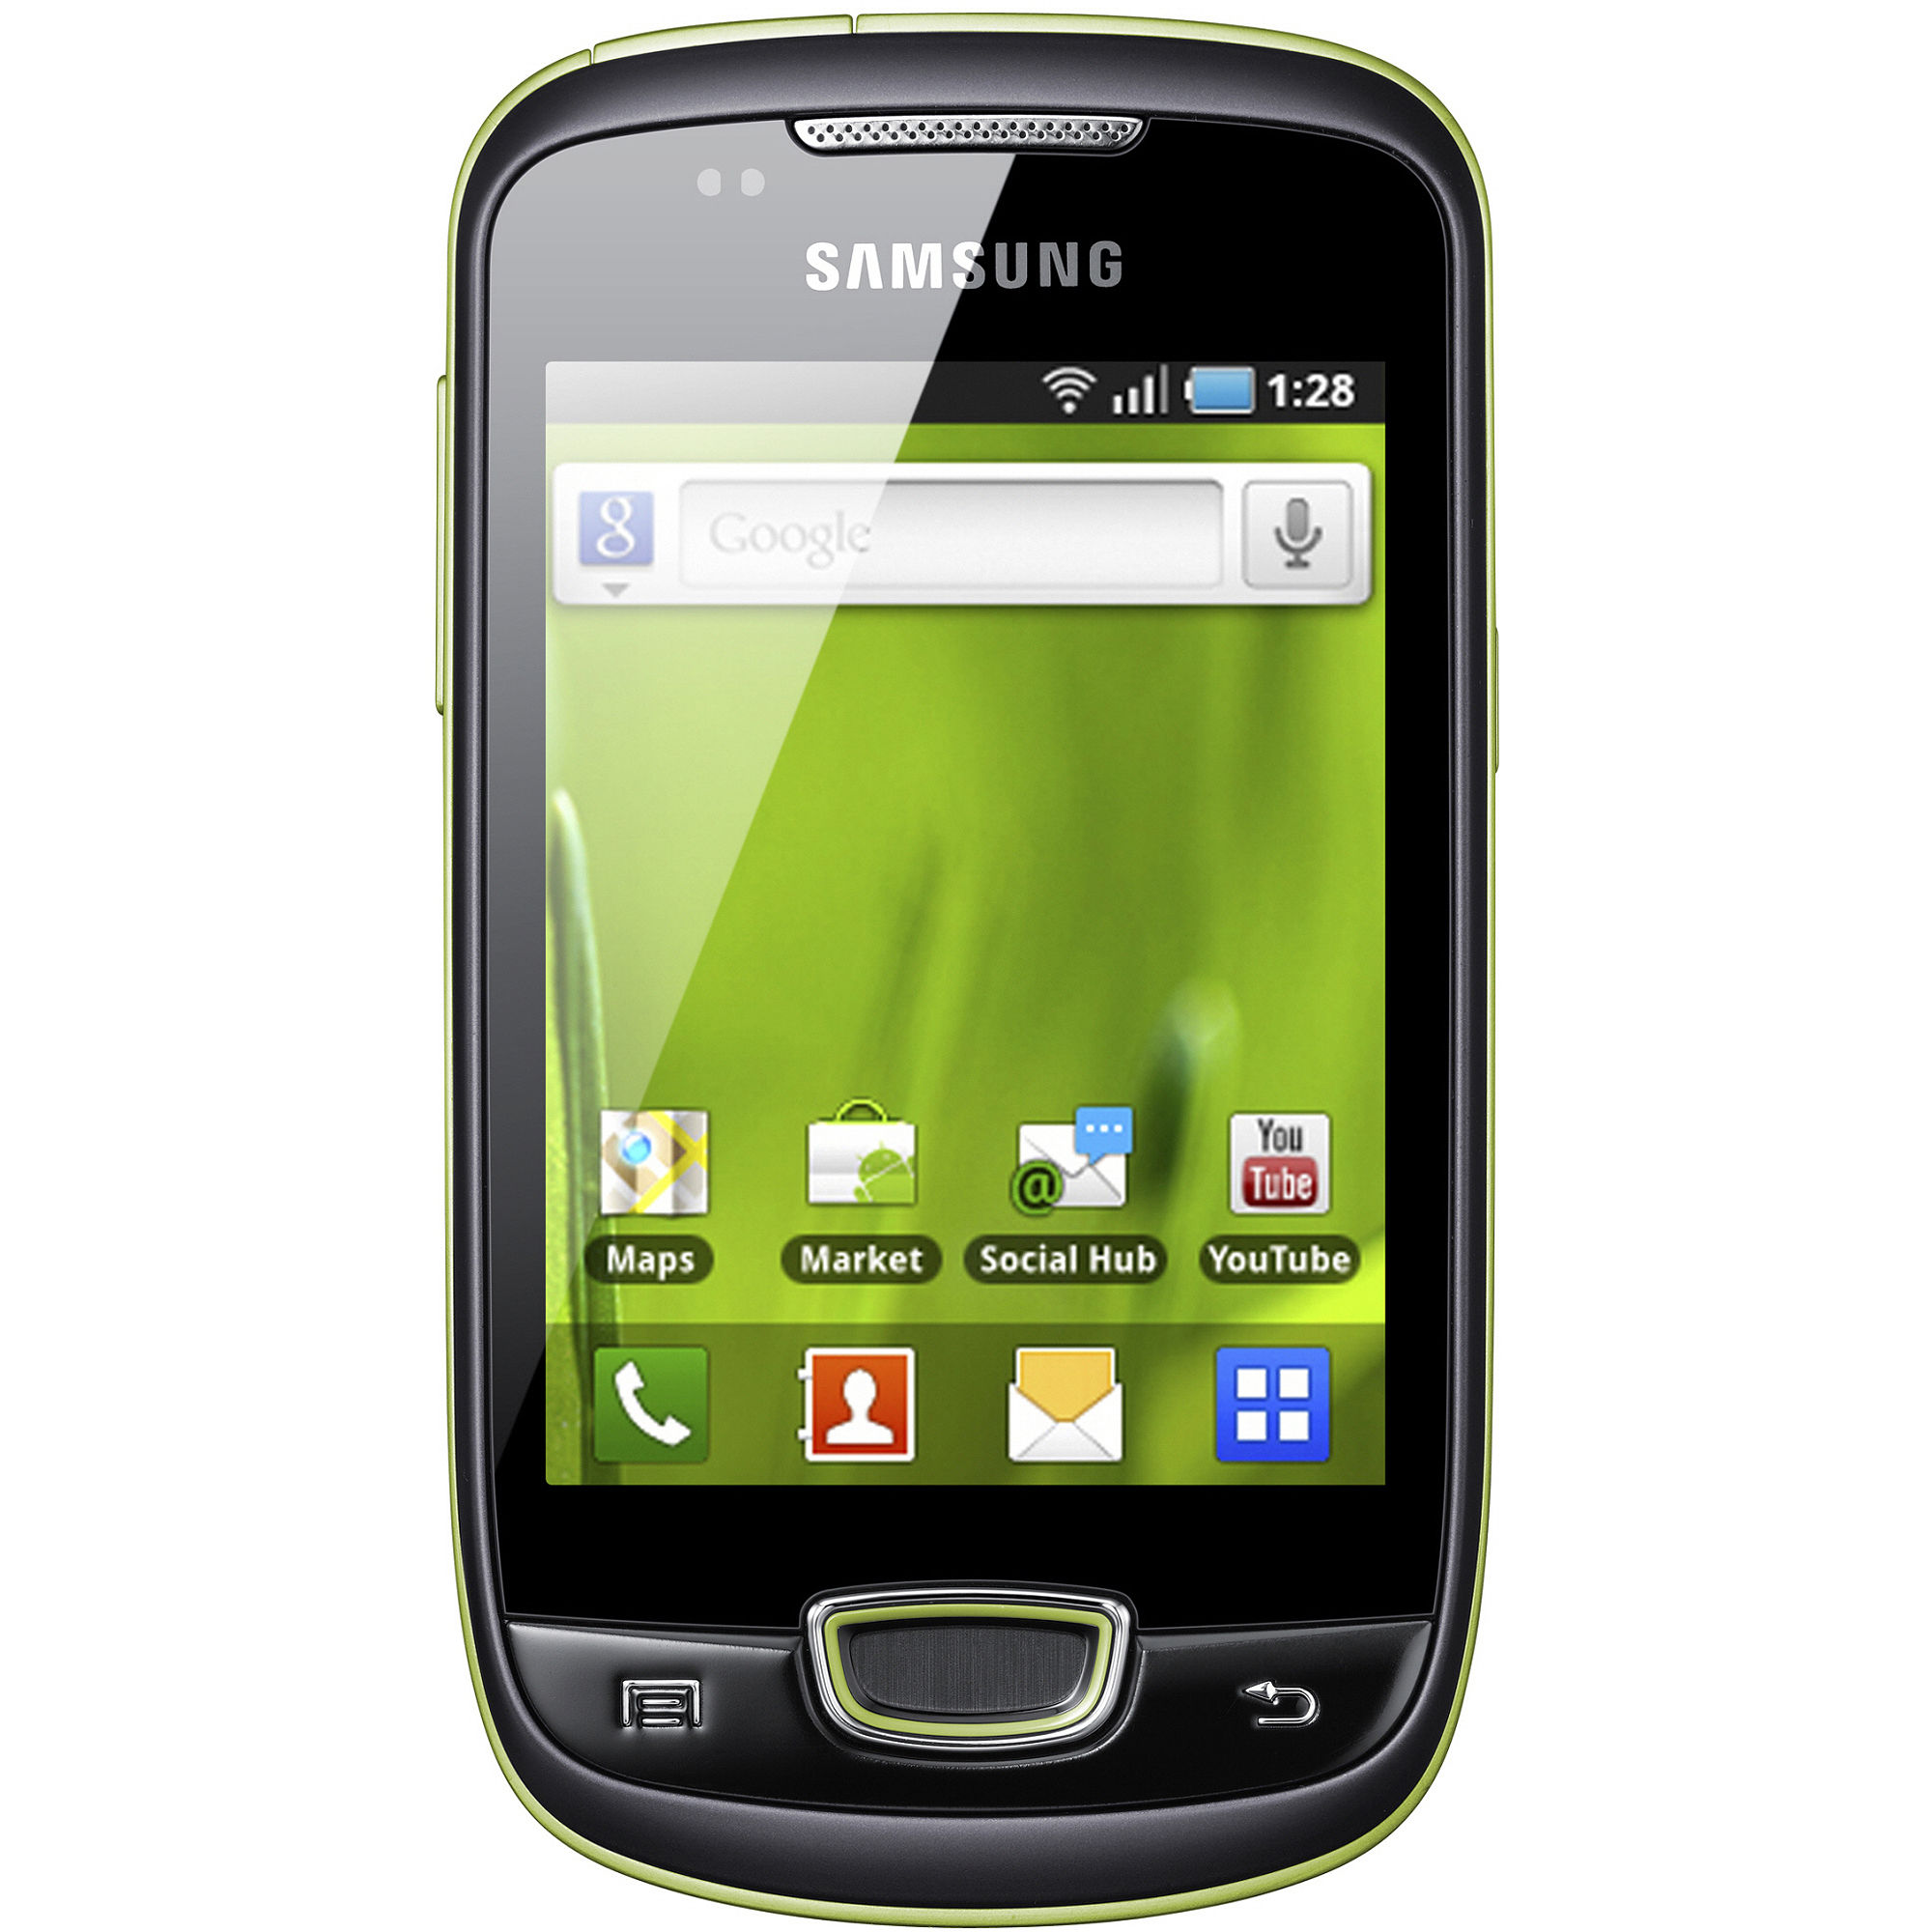 Samsung S5570 Galaxy Mini GSM Cell Phone, Black (Unlocked)